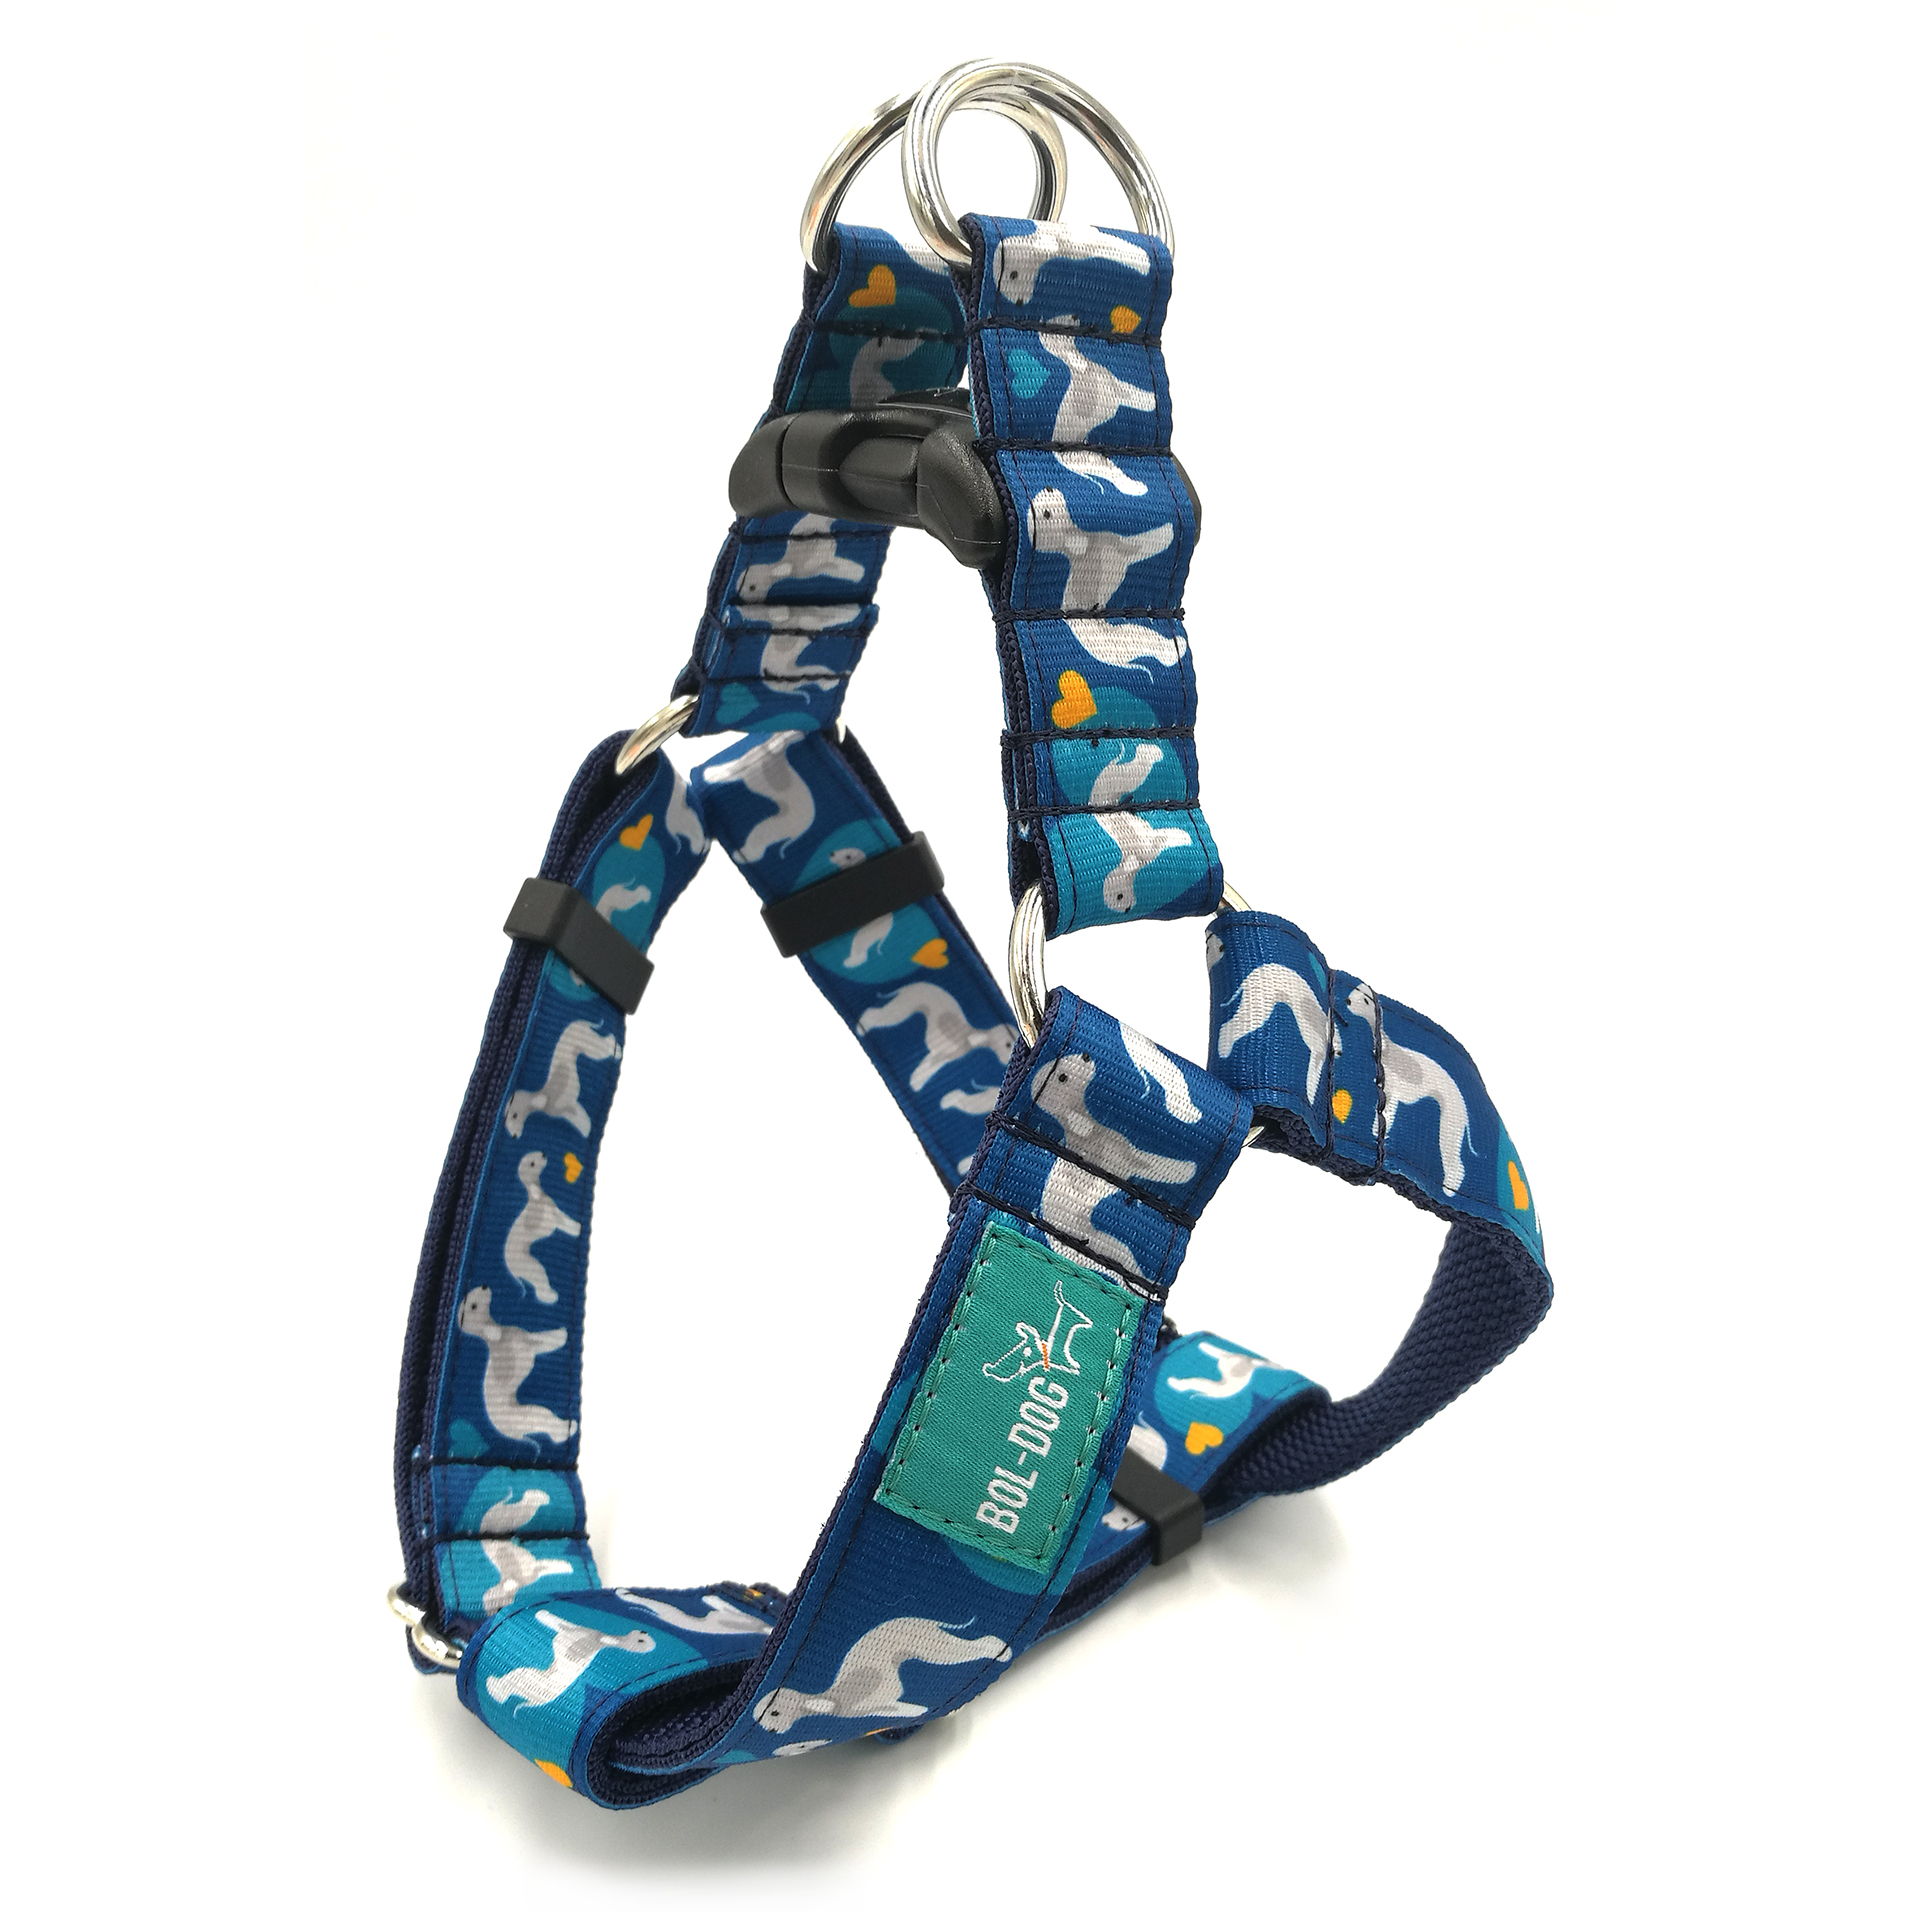 Bedlington dog harness